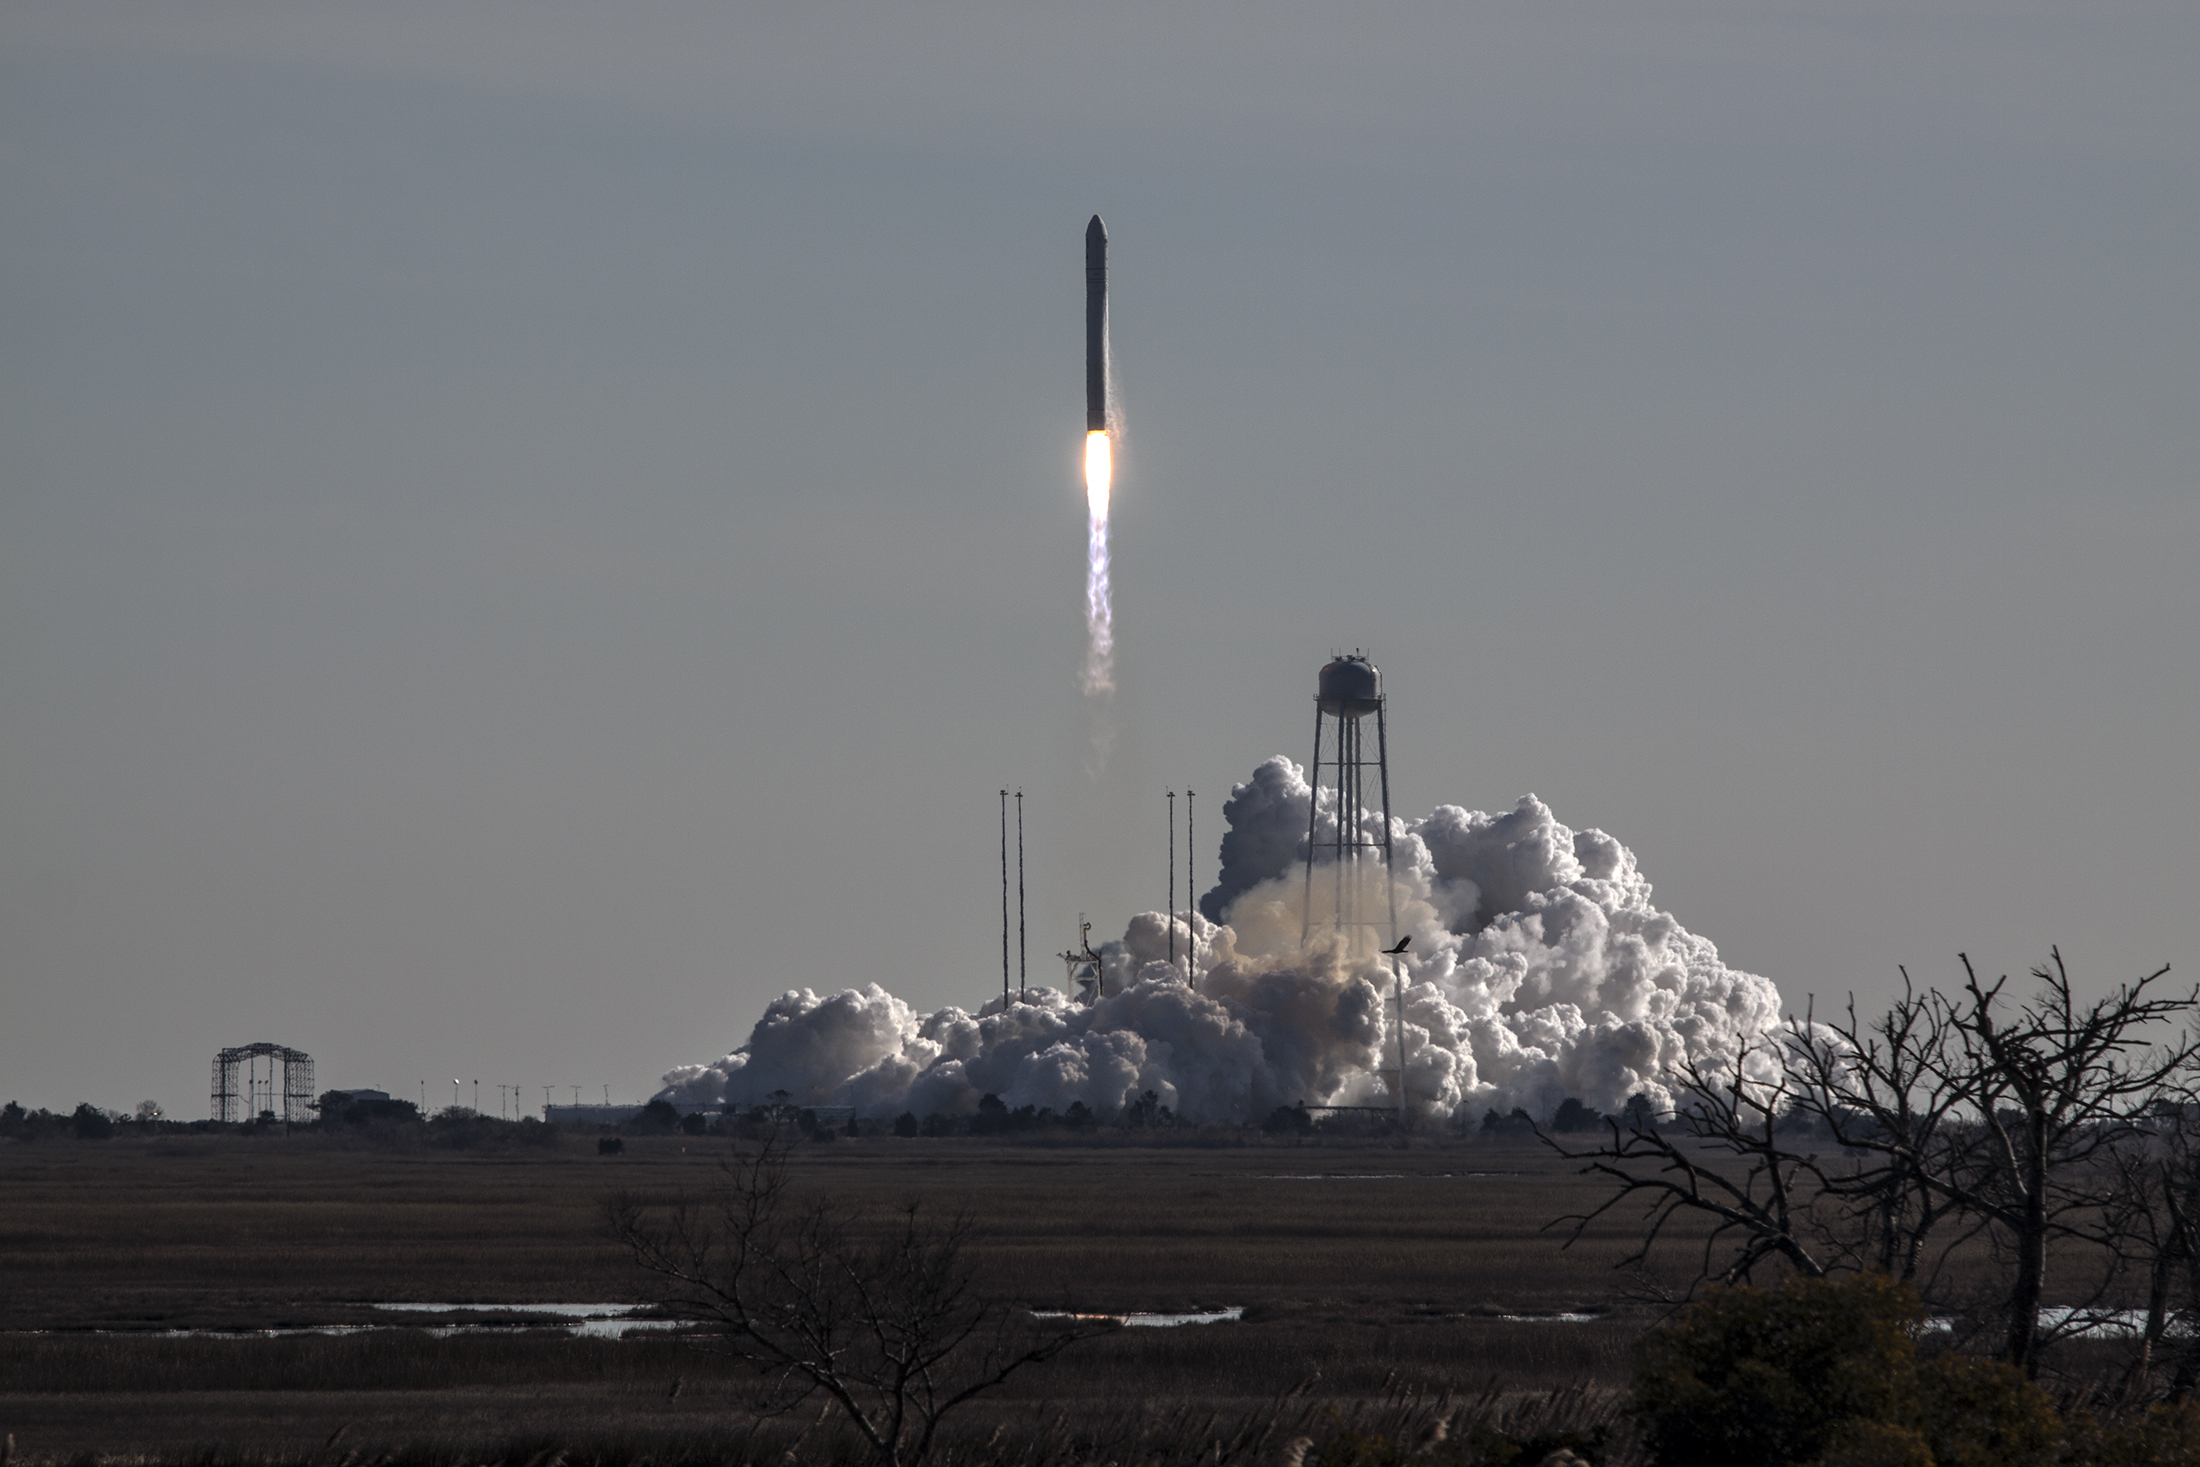 Launch of Antares: Jan. 9, 2014